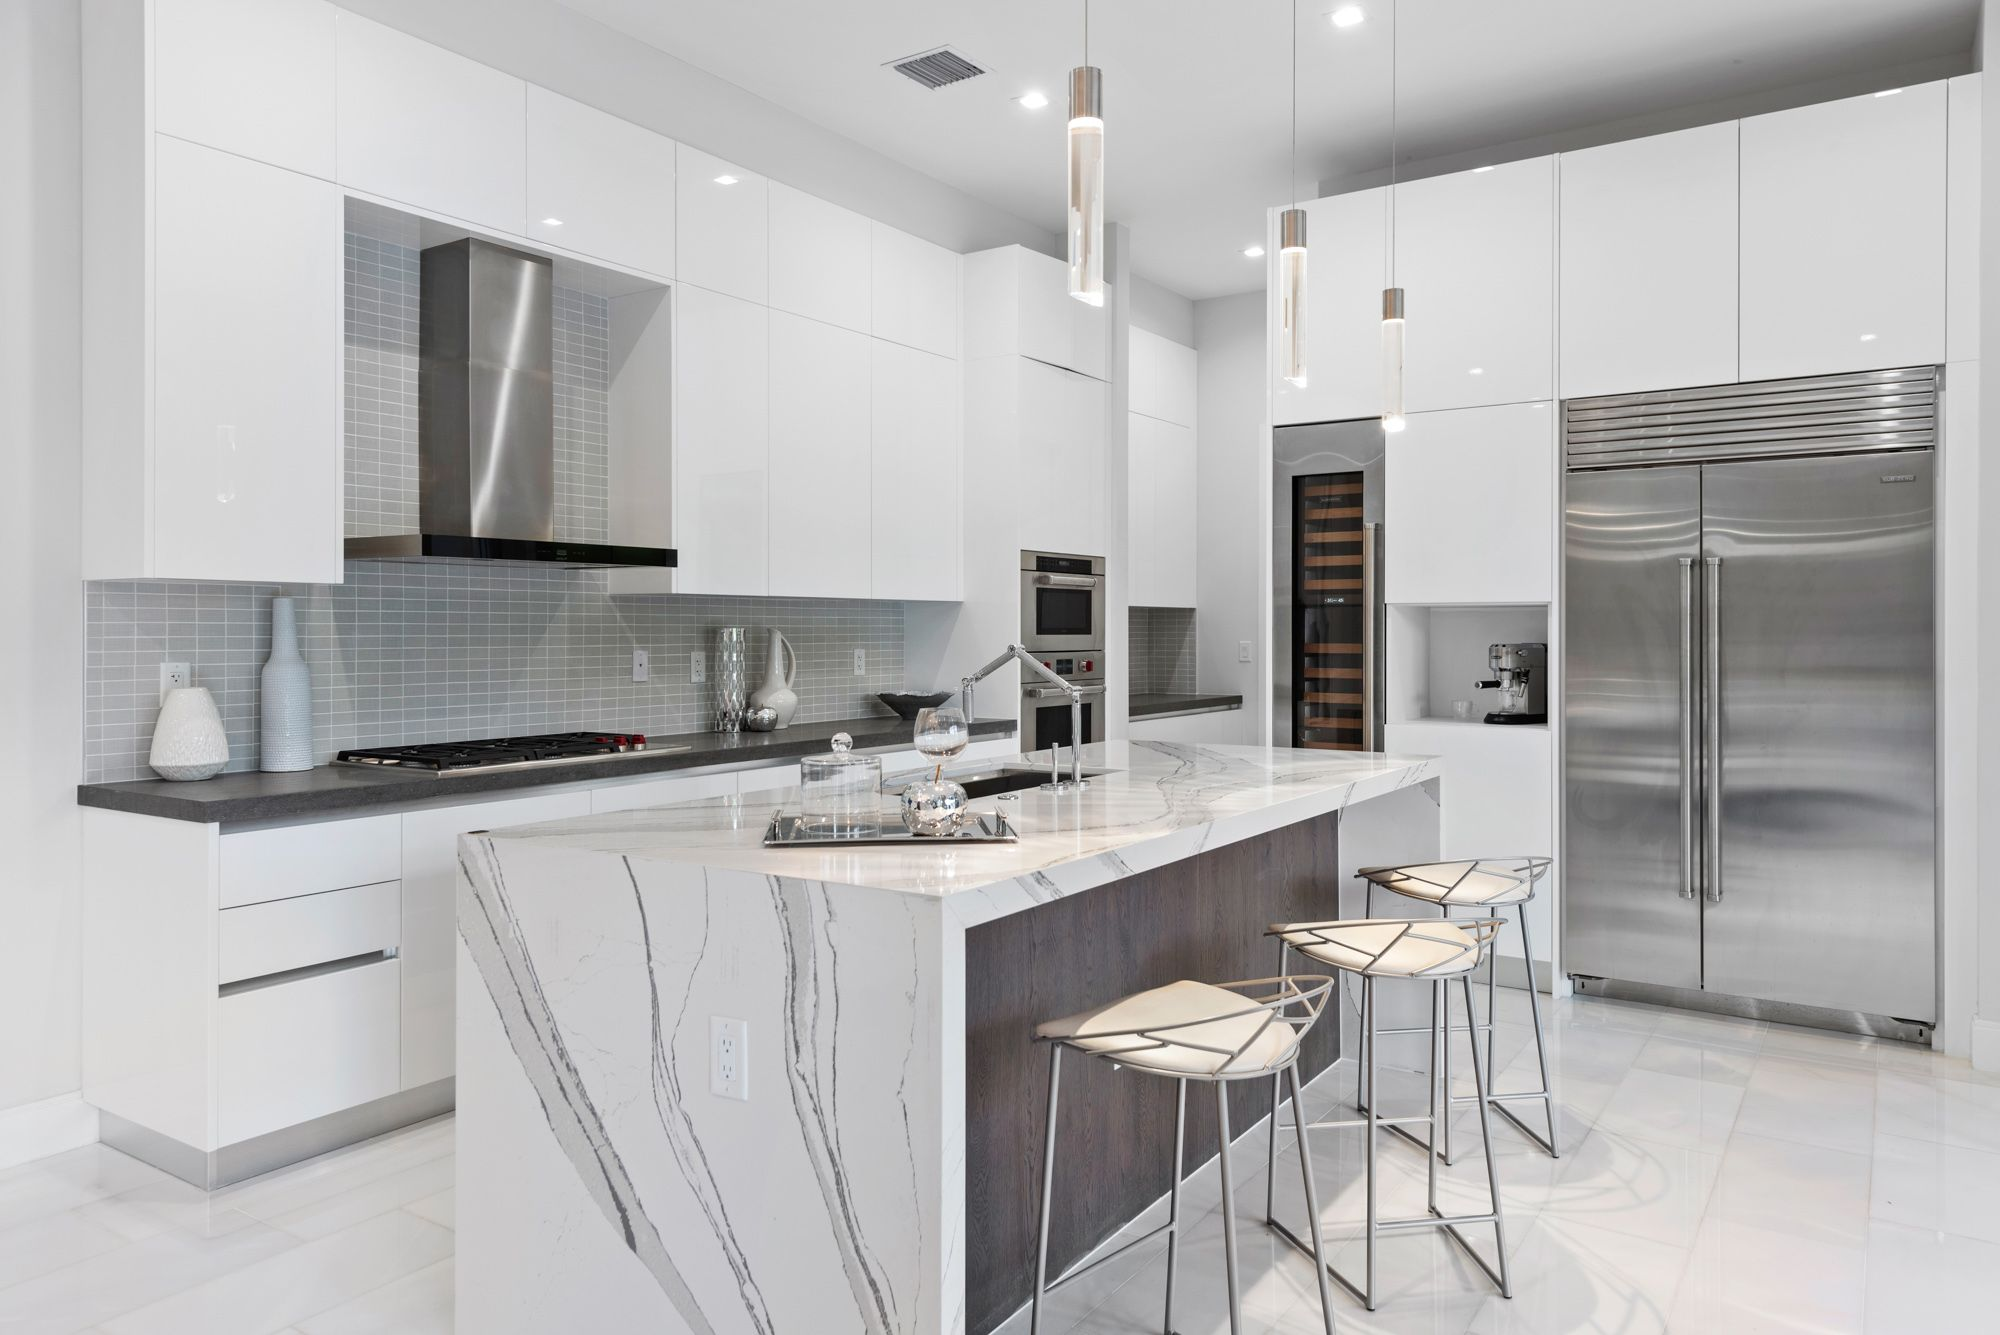 Kitchen featured in the Capri A Three Story By CC Homes in Miami-Dade County, FL